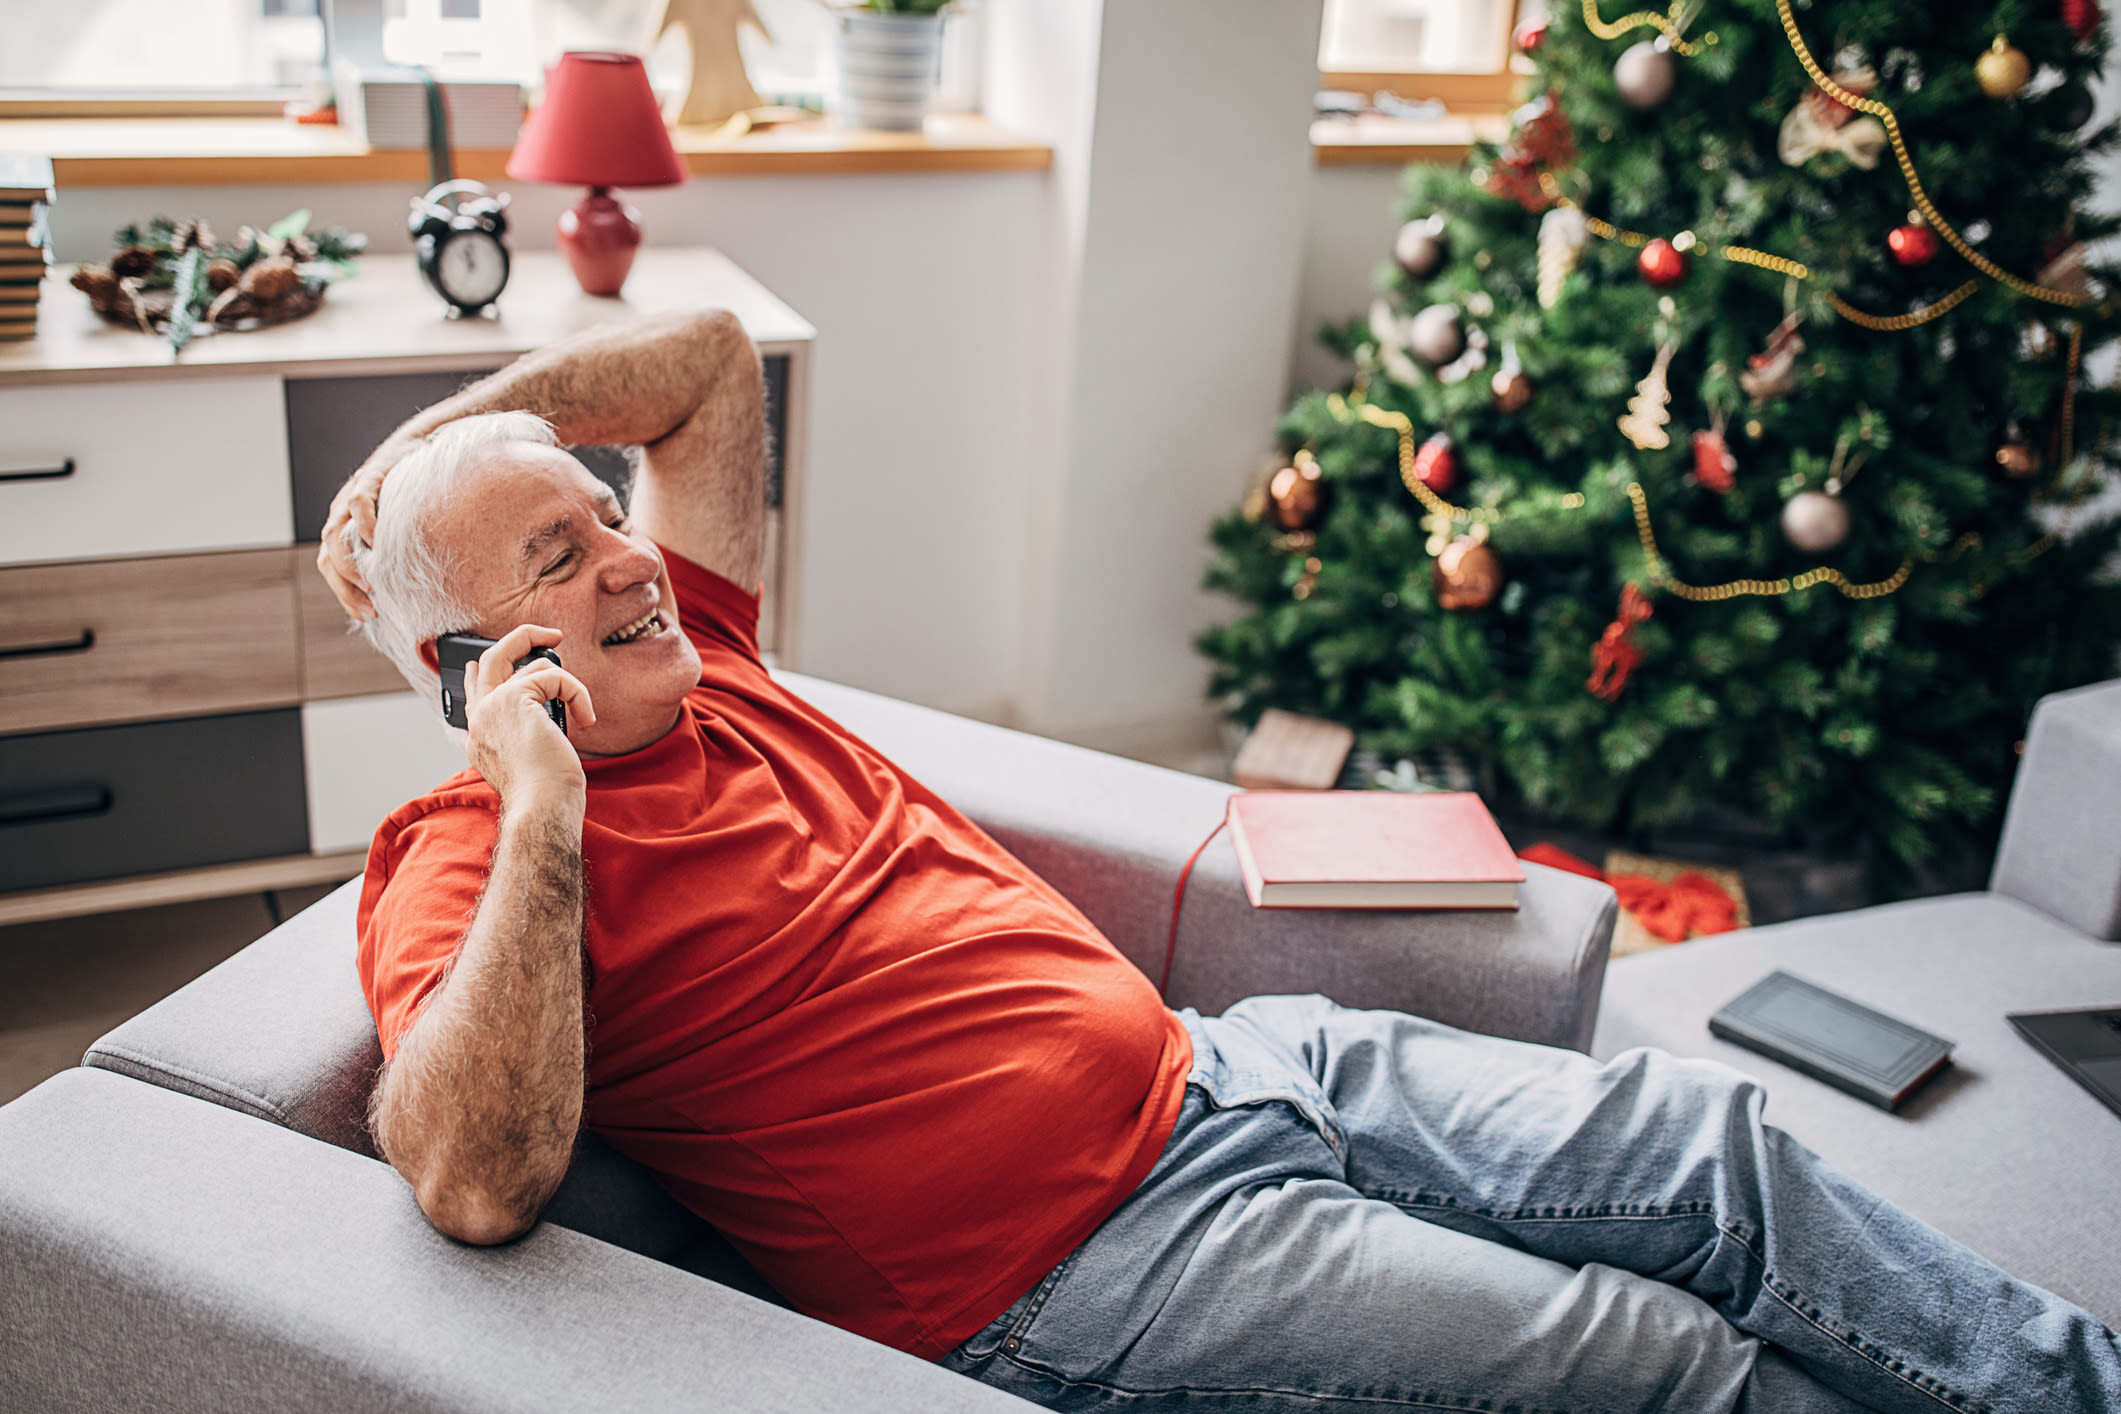 A man sitting in an armchair on the phone, with a Christmas tree in the background